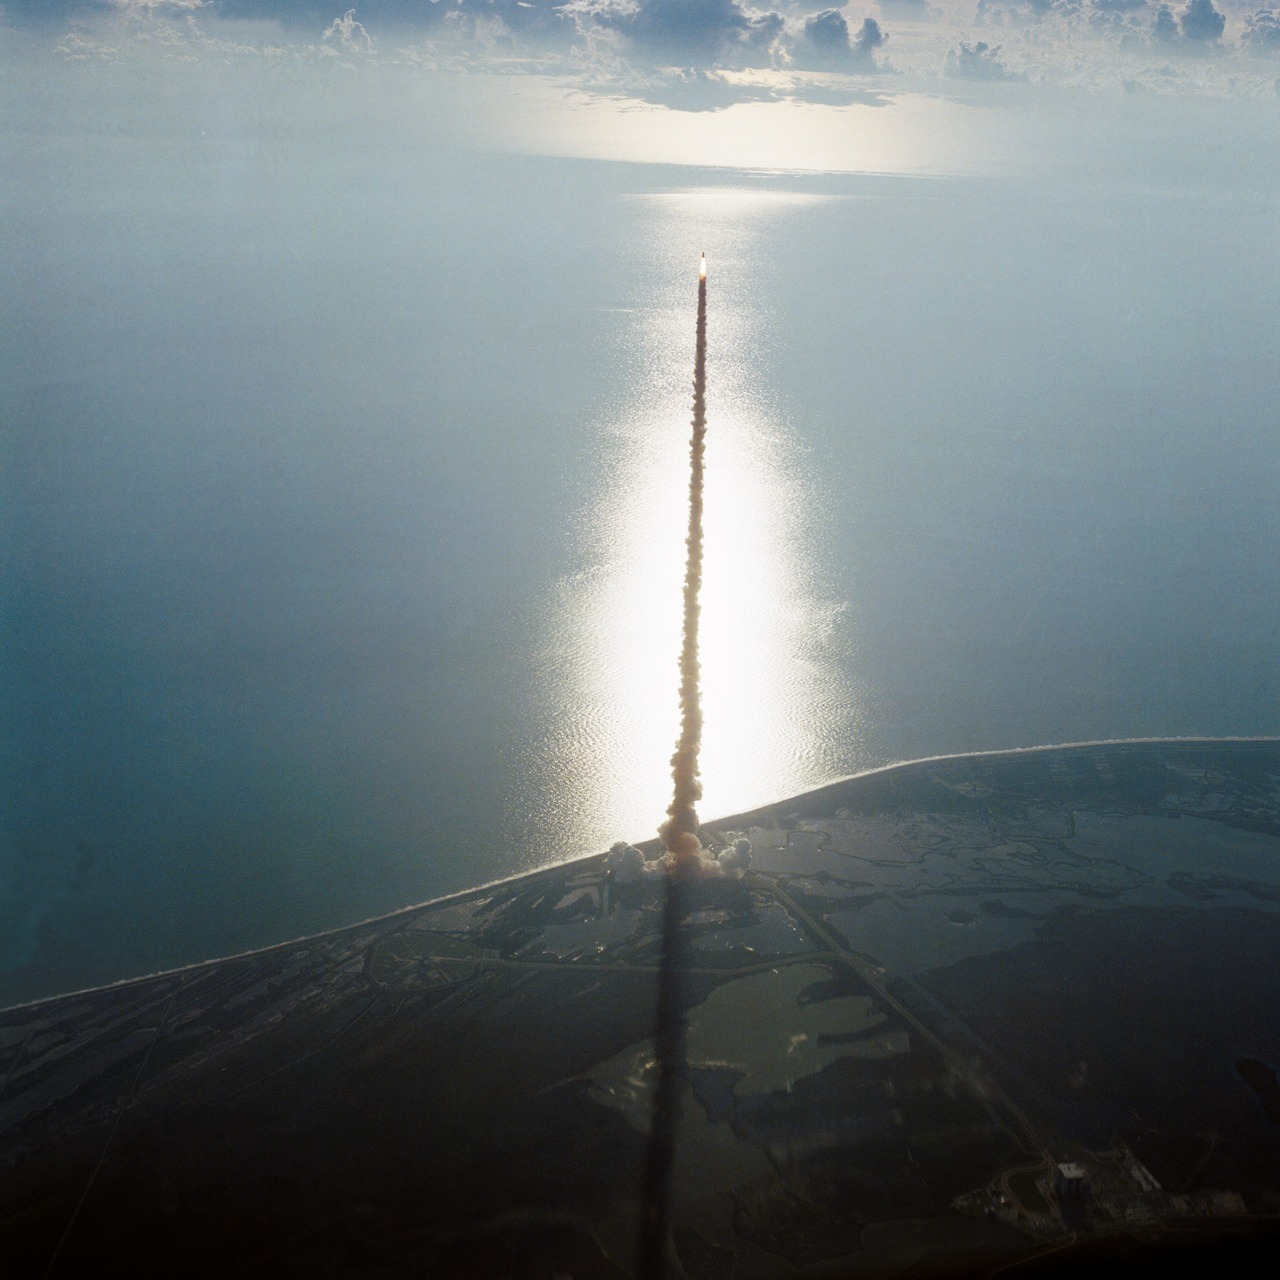 Launch of the Space Shuttle Discovery from the NASA Kennedy Space Center, 1984. It was the third operational orbiter following the Space Shuttle's Columbia and Challenger.